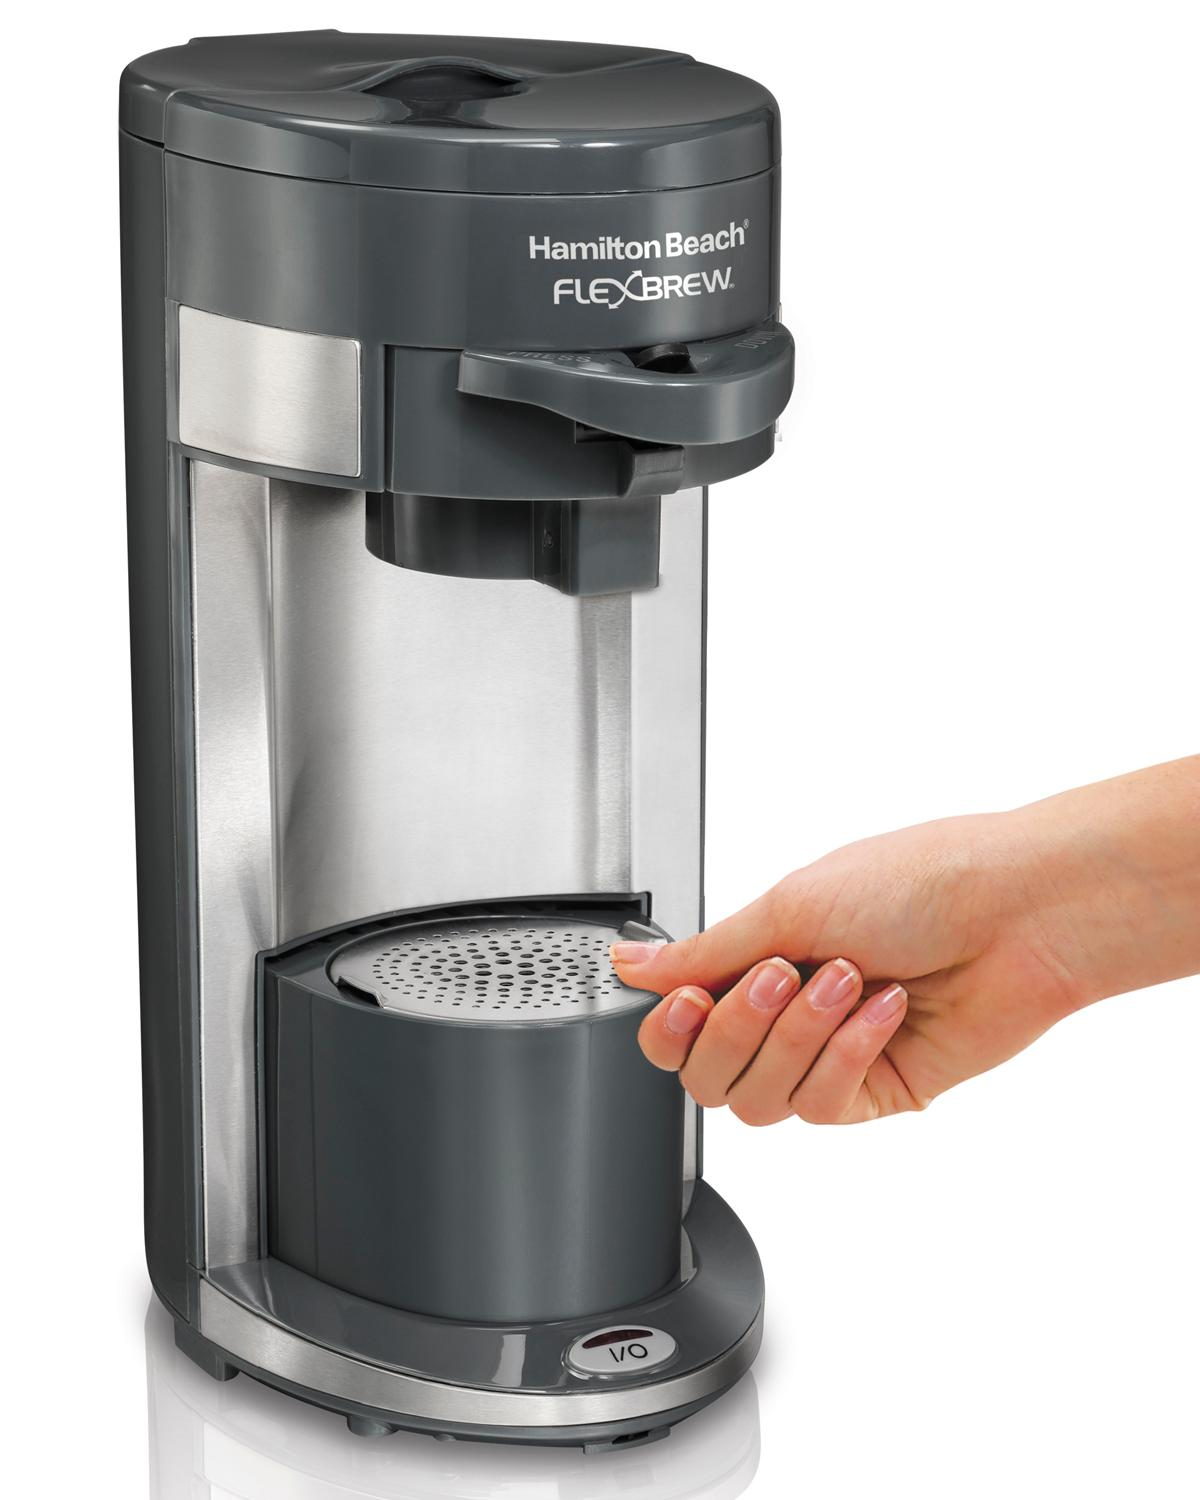 K Cup Coffee Maker Ratings : Amazon.com: Hamilton Beach Coffee Maker, Flex Brew Single-Serve (49963): Kitchen & Dining